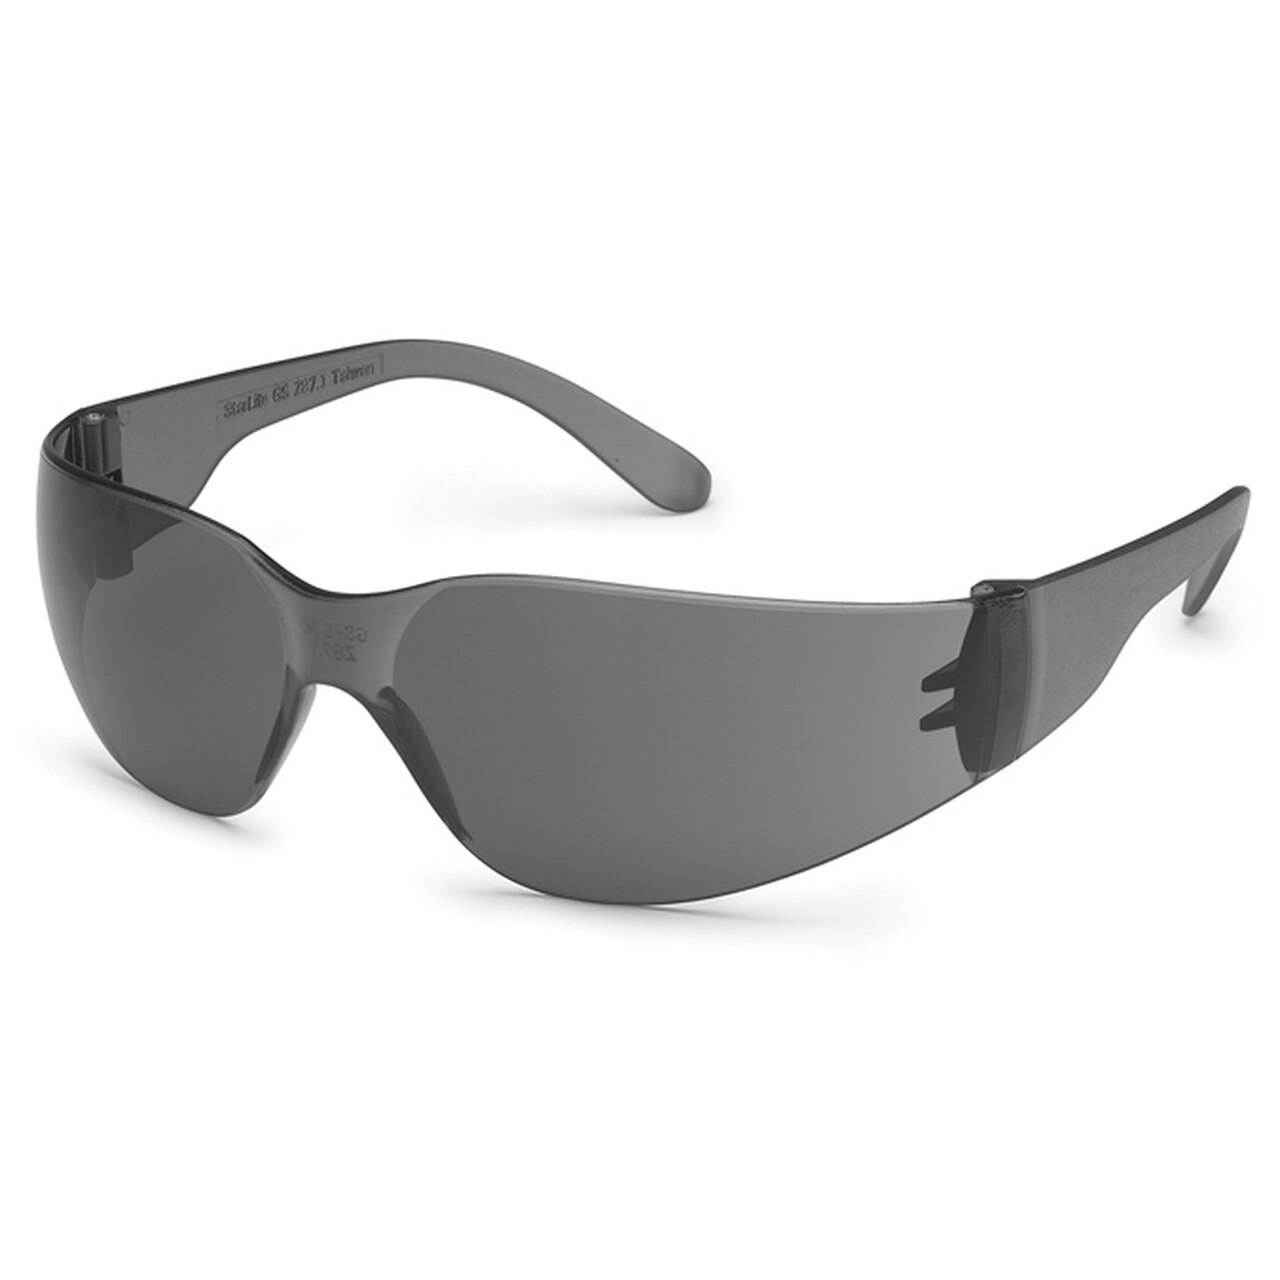 Starlite Safety Eyewear - Hard Coated Smoke Lens - SL-4683